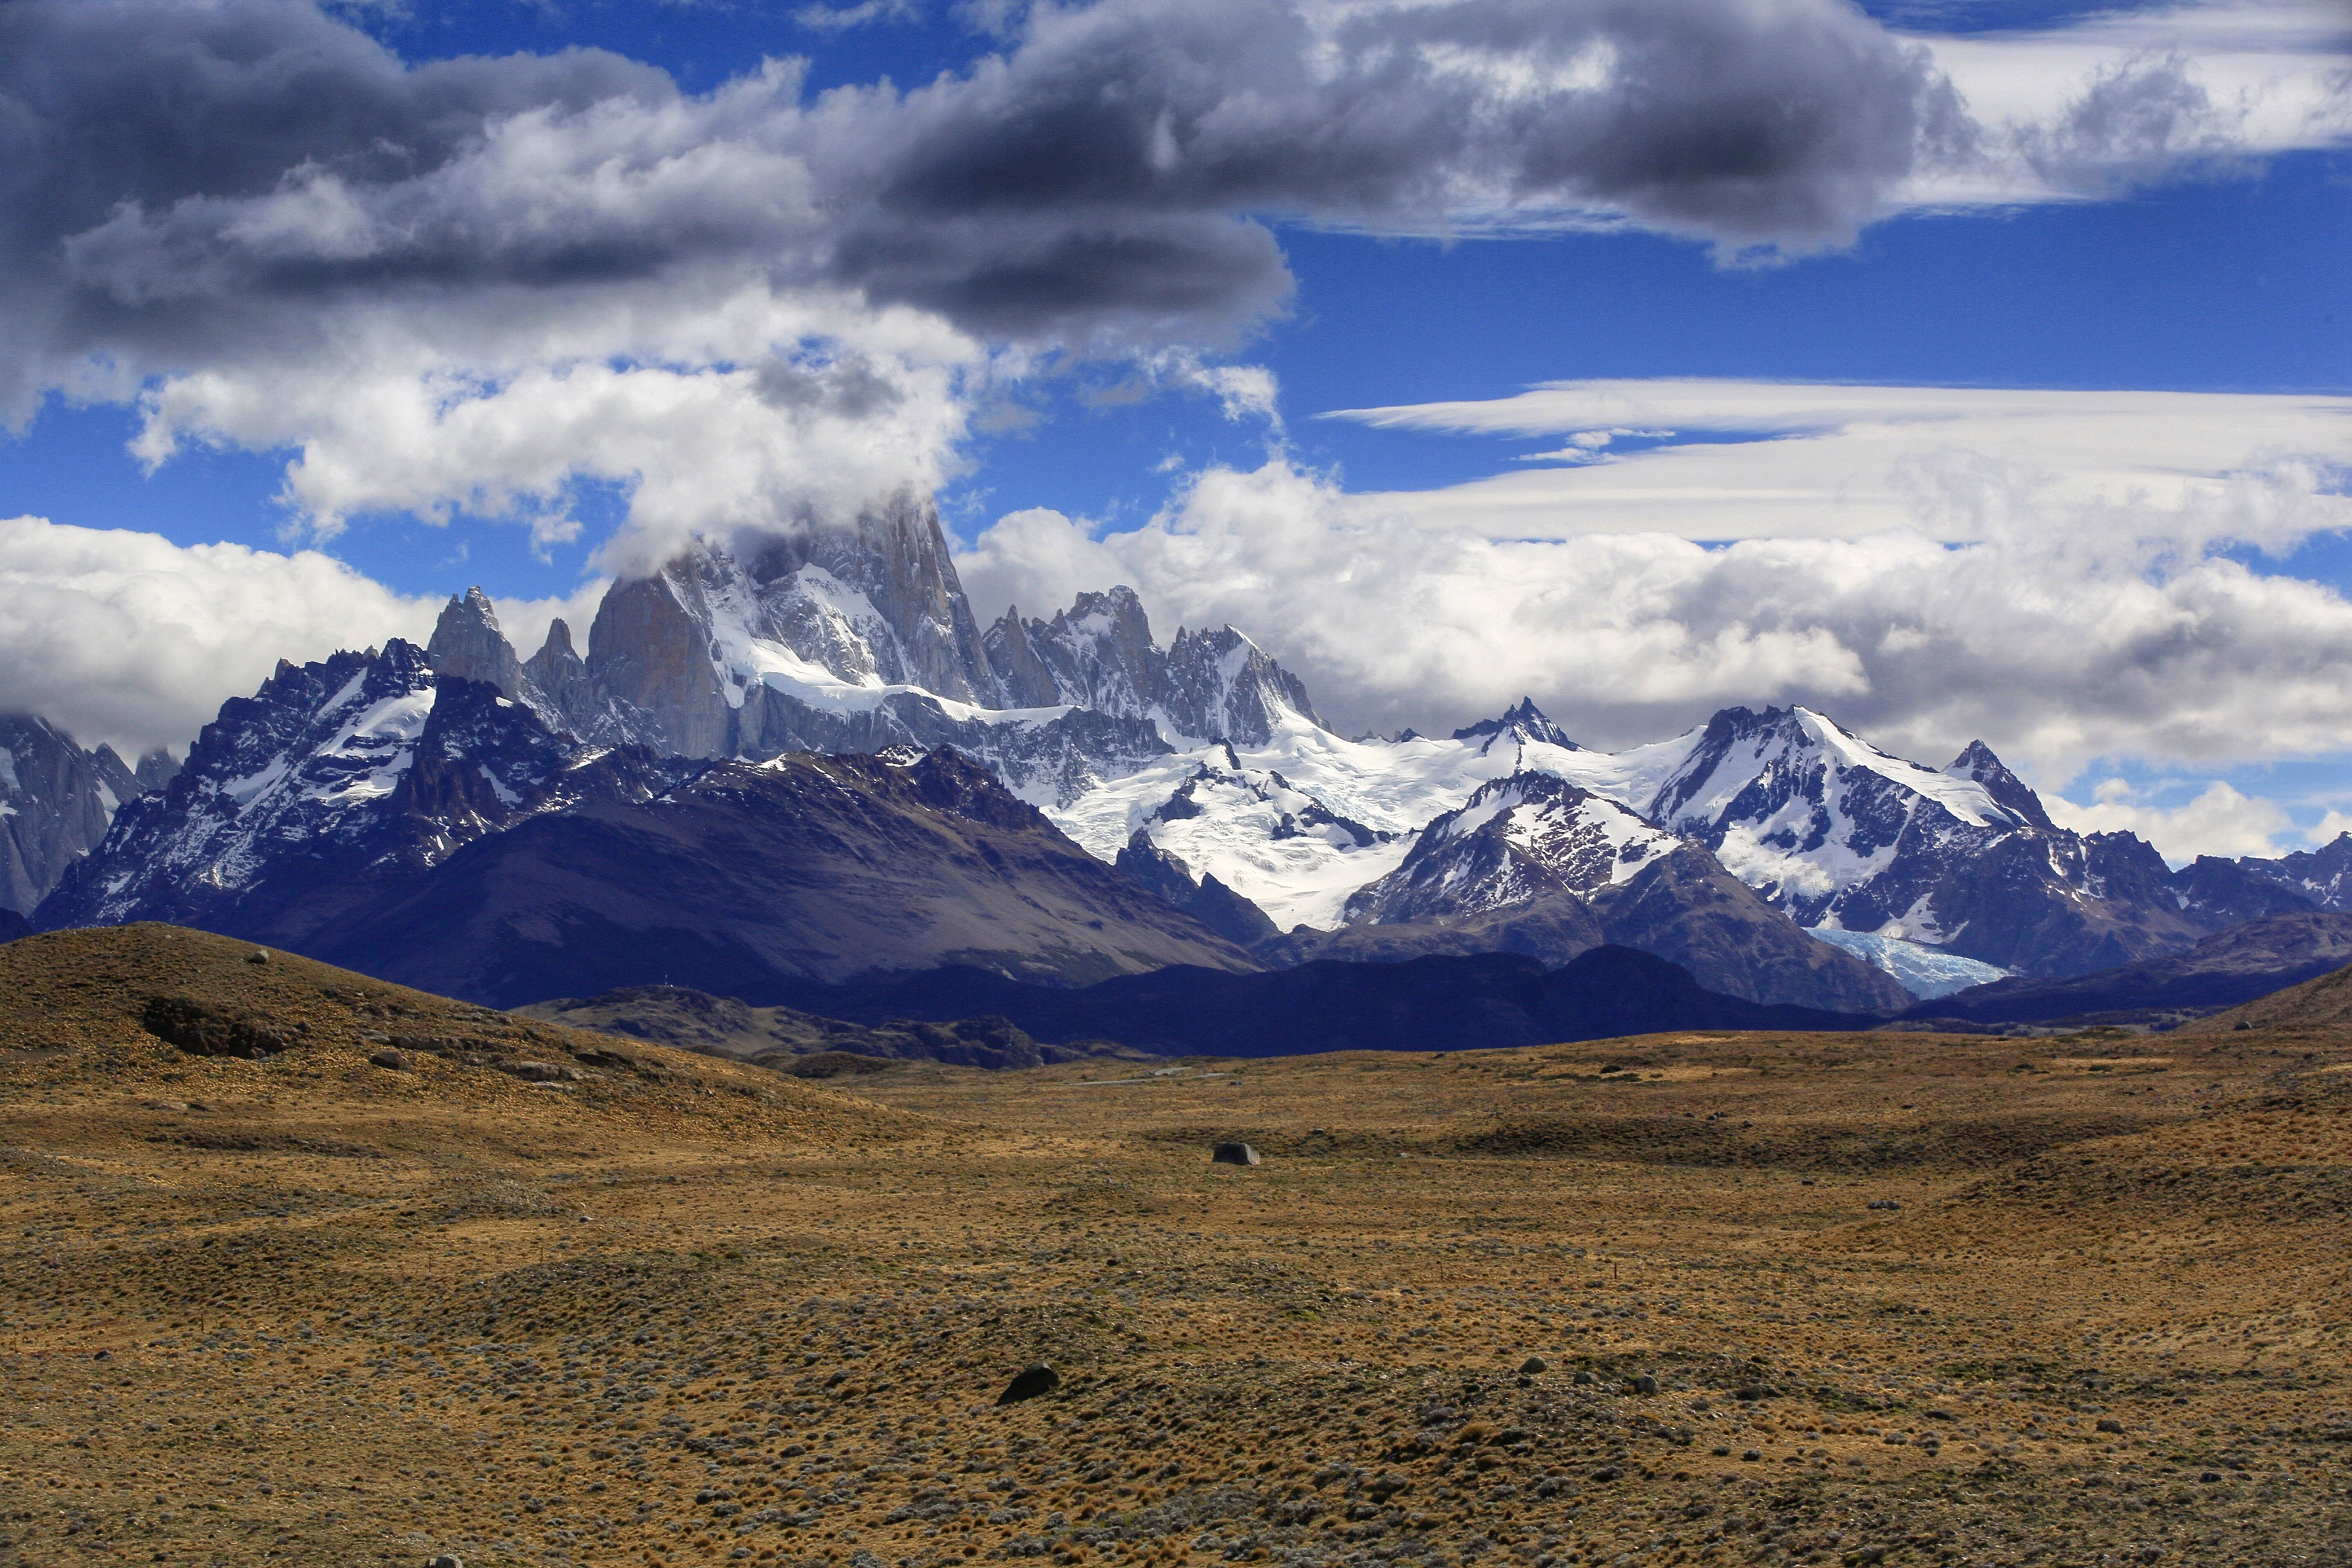 Mt. Fitzroy and the Andes range, Patagonia, Argentina.